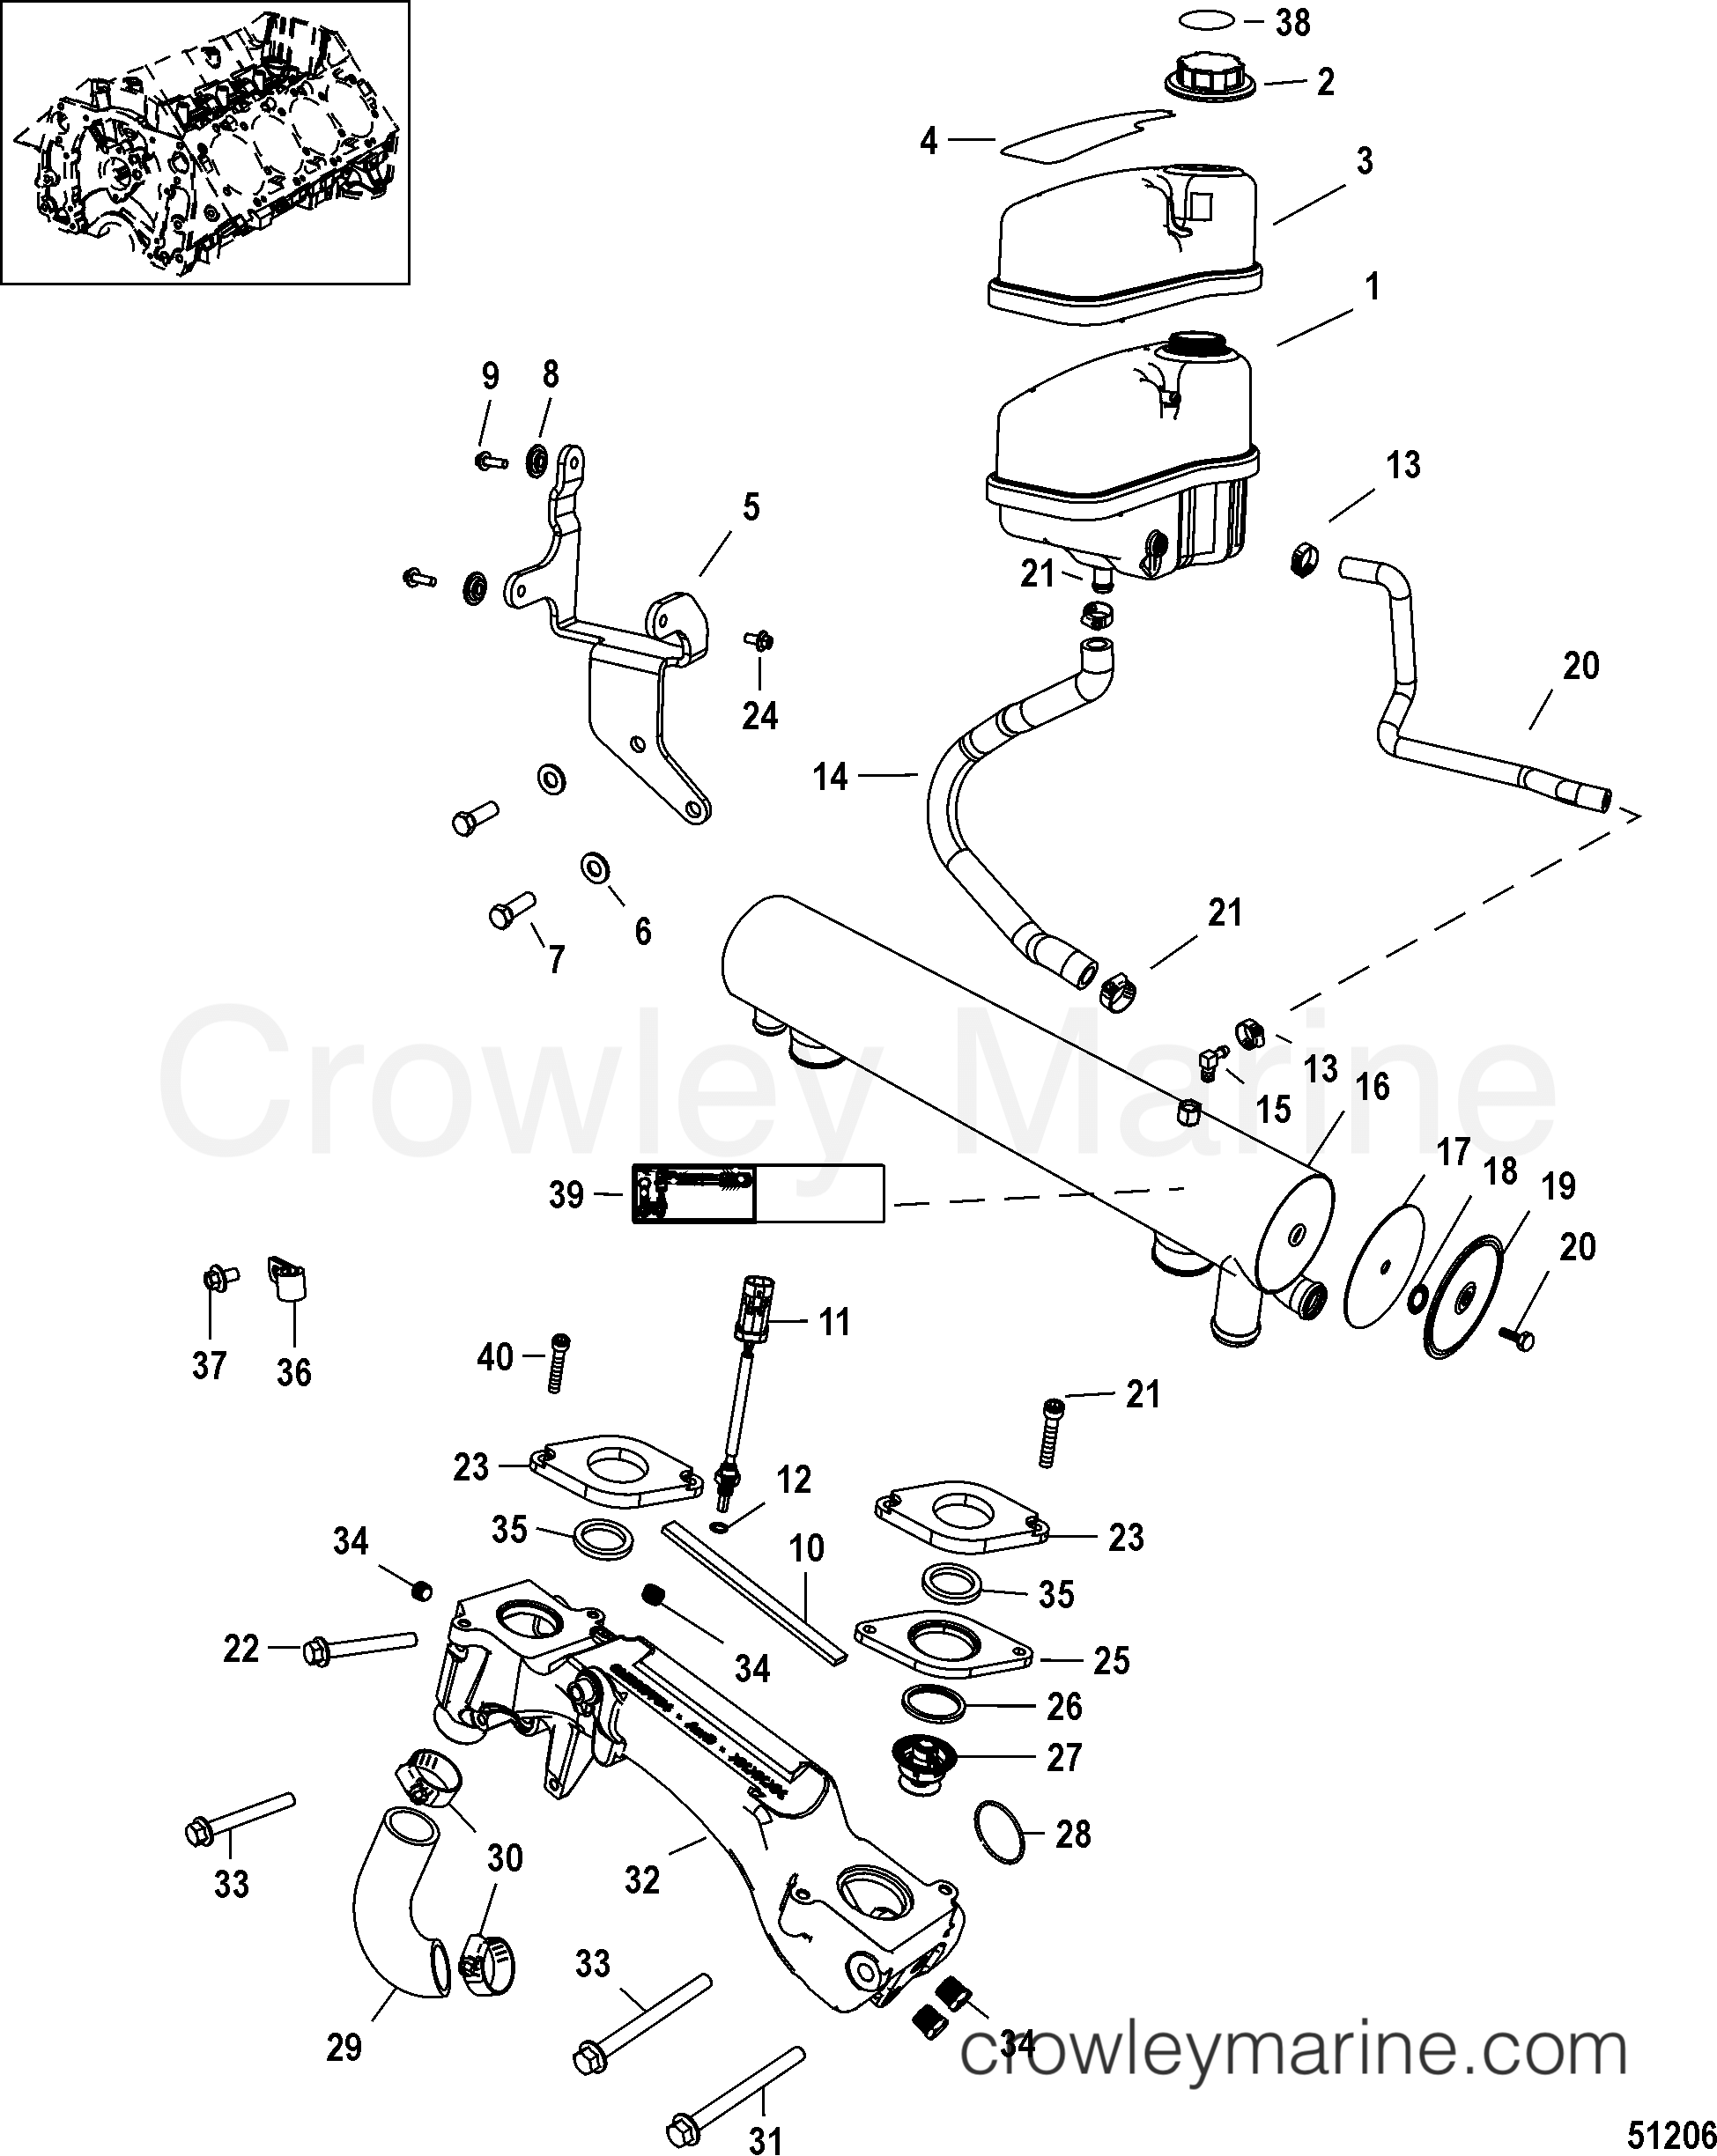 COOLING SYSTEM, FRESH WATER COMPONENTS (2A041665 & UP